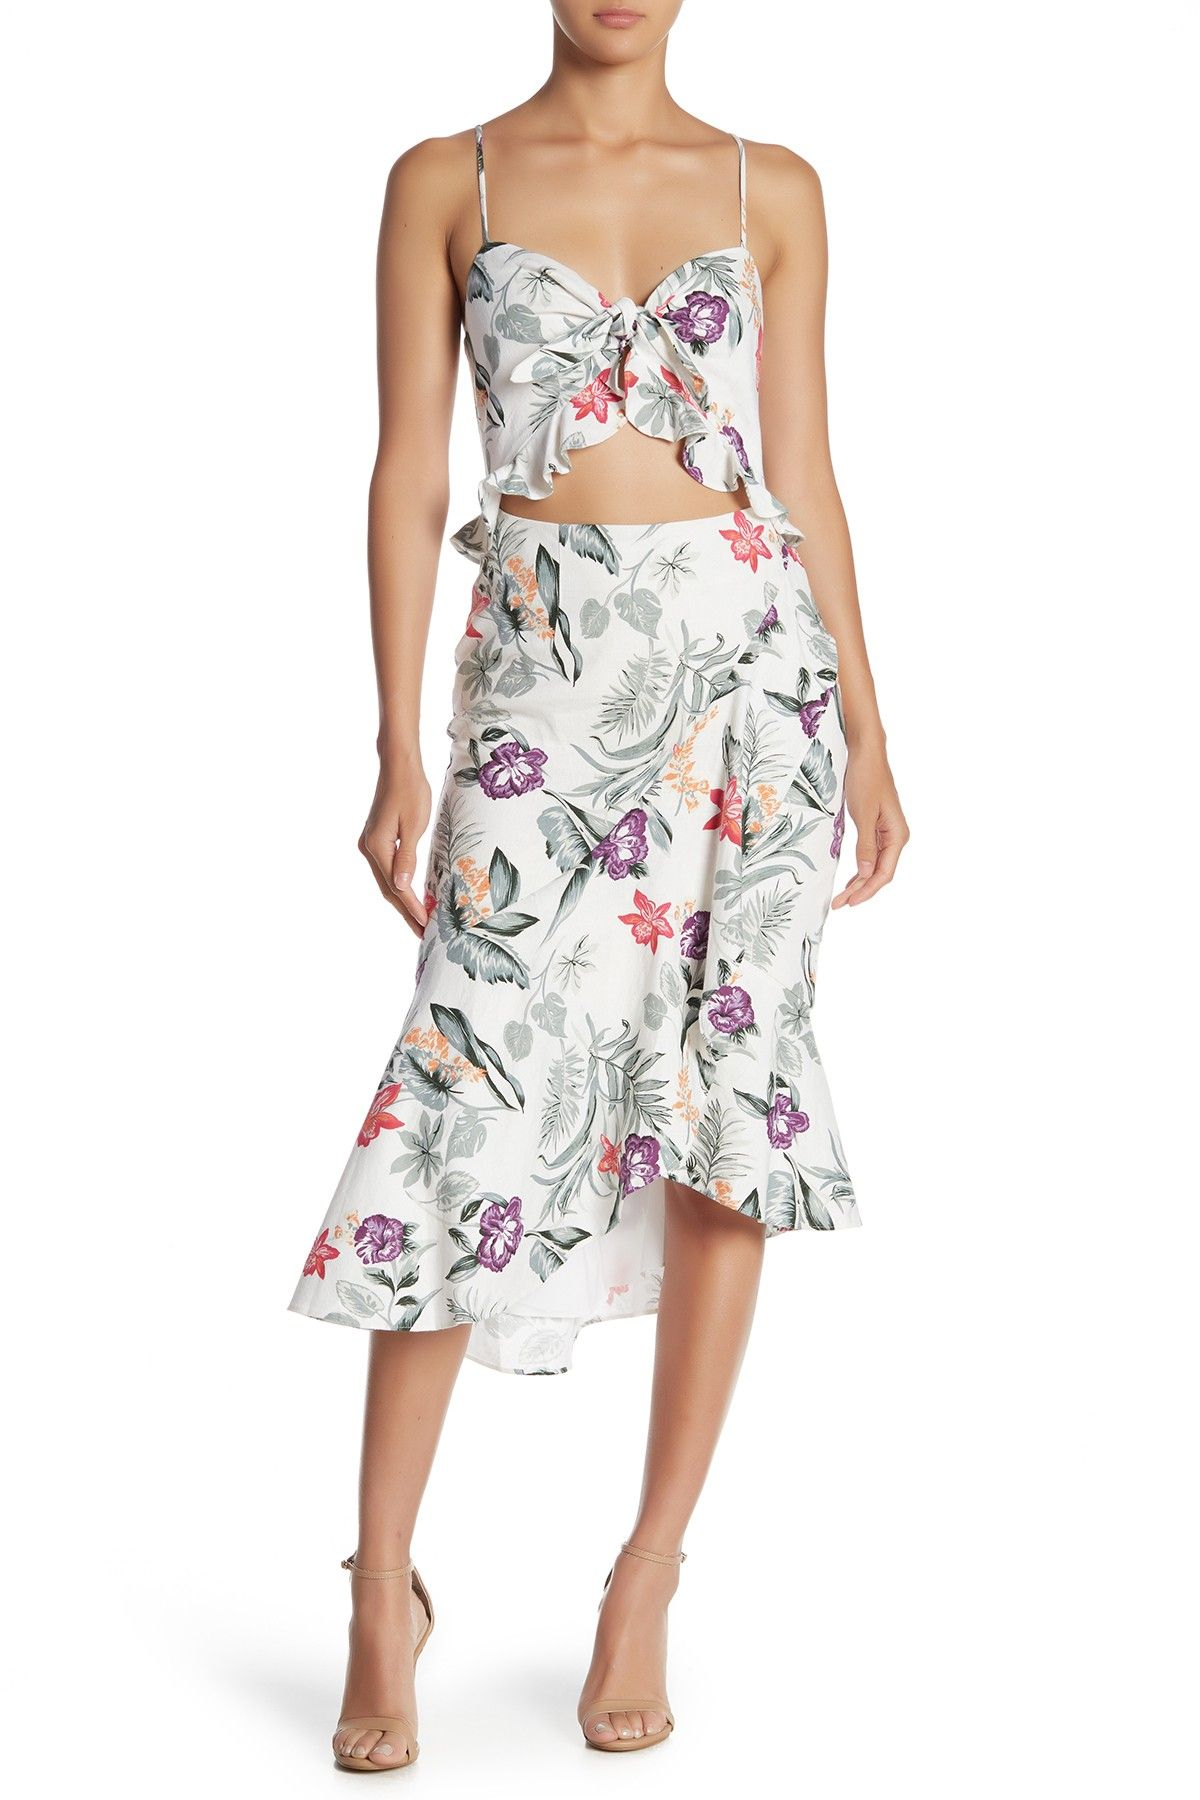 Wayf Mahari Ruffle Hem Front Knot Dress Is Now 59 Off Free Shipping On Orders Over 100 Front Knot Dress Nordstrom Dresses Dresses [ 1800 x 1200 Pixel ]